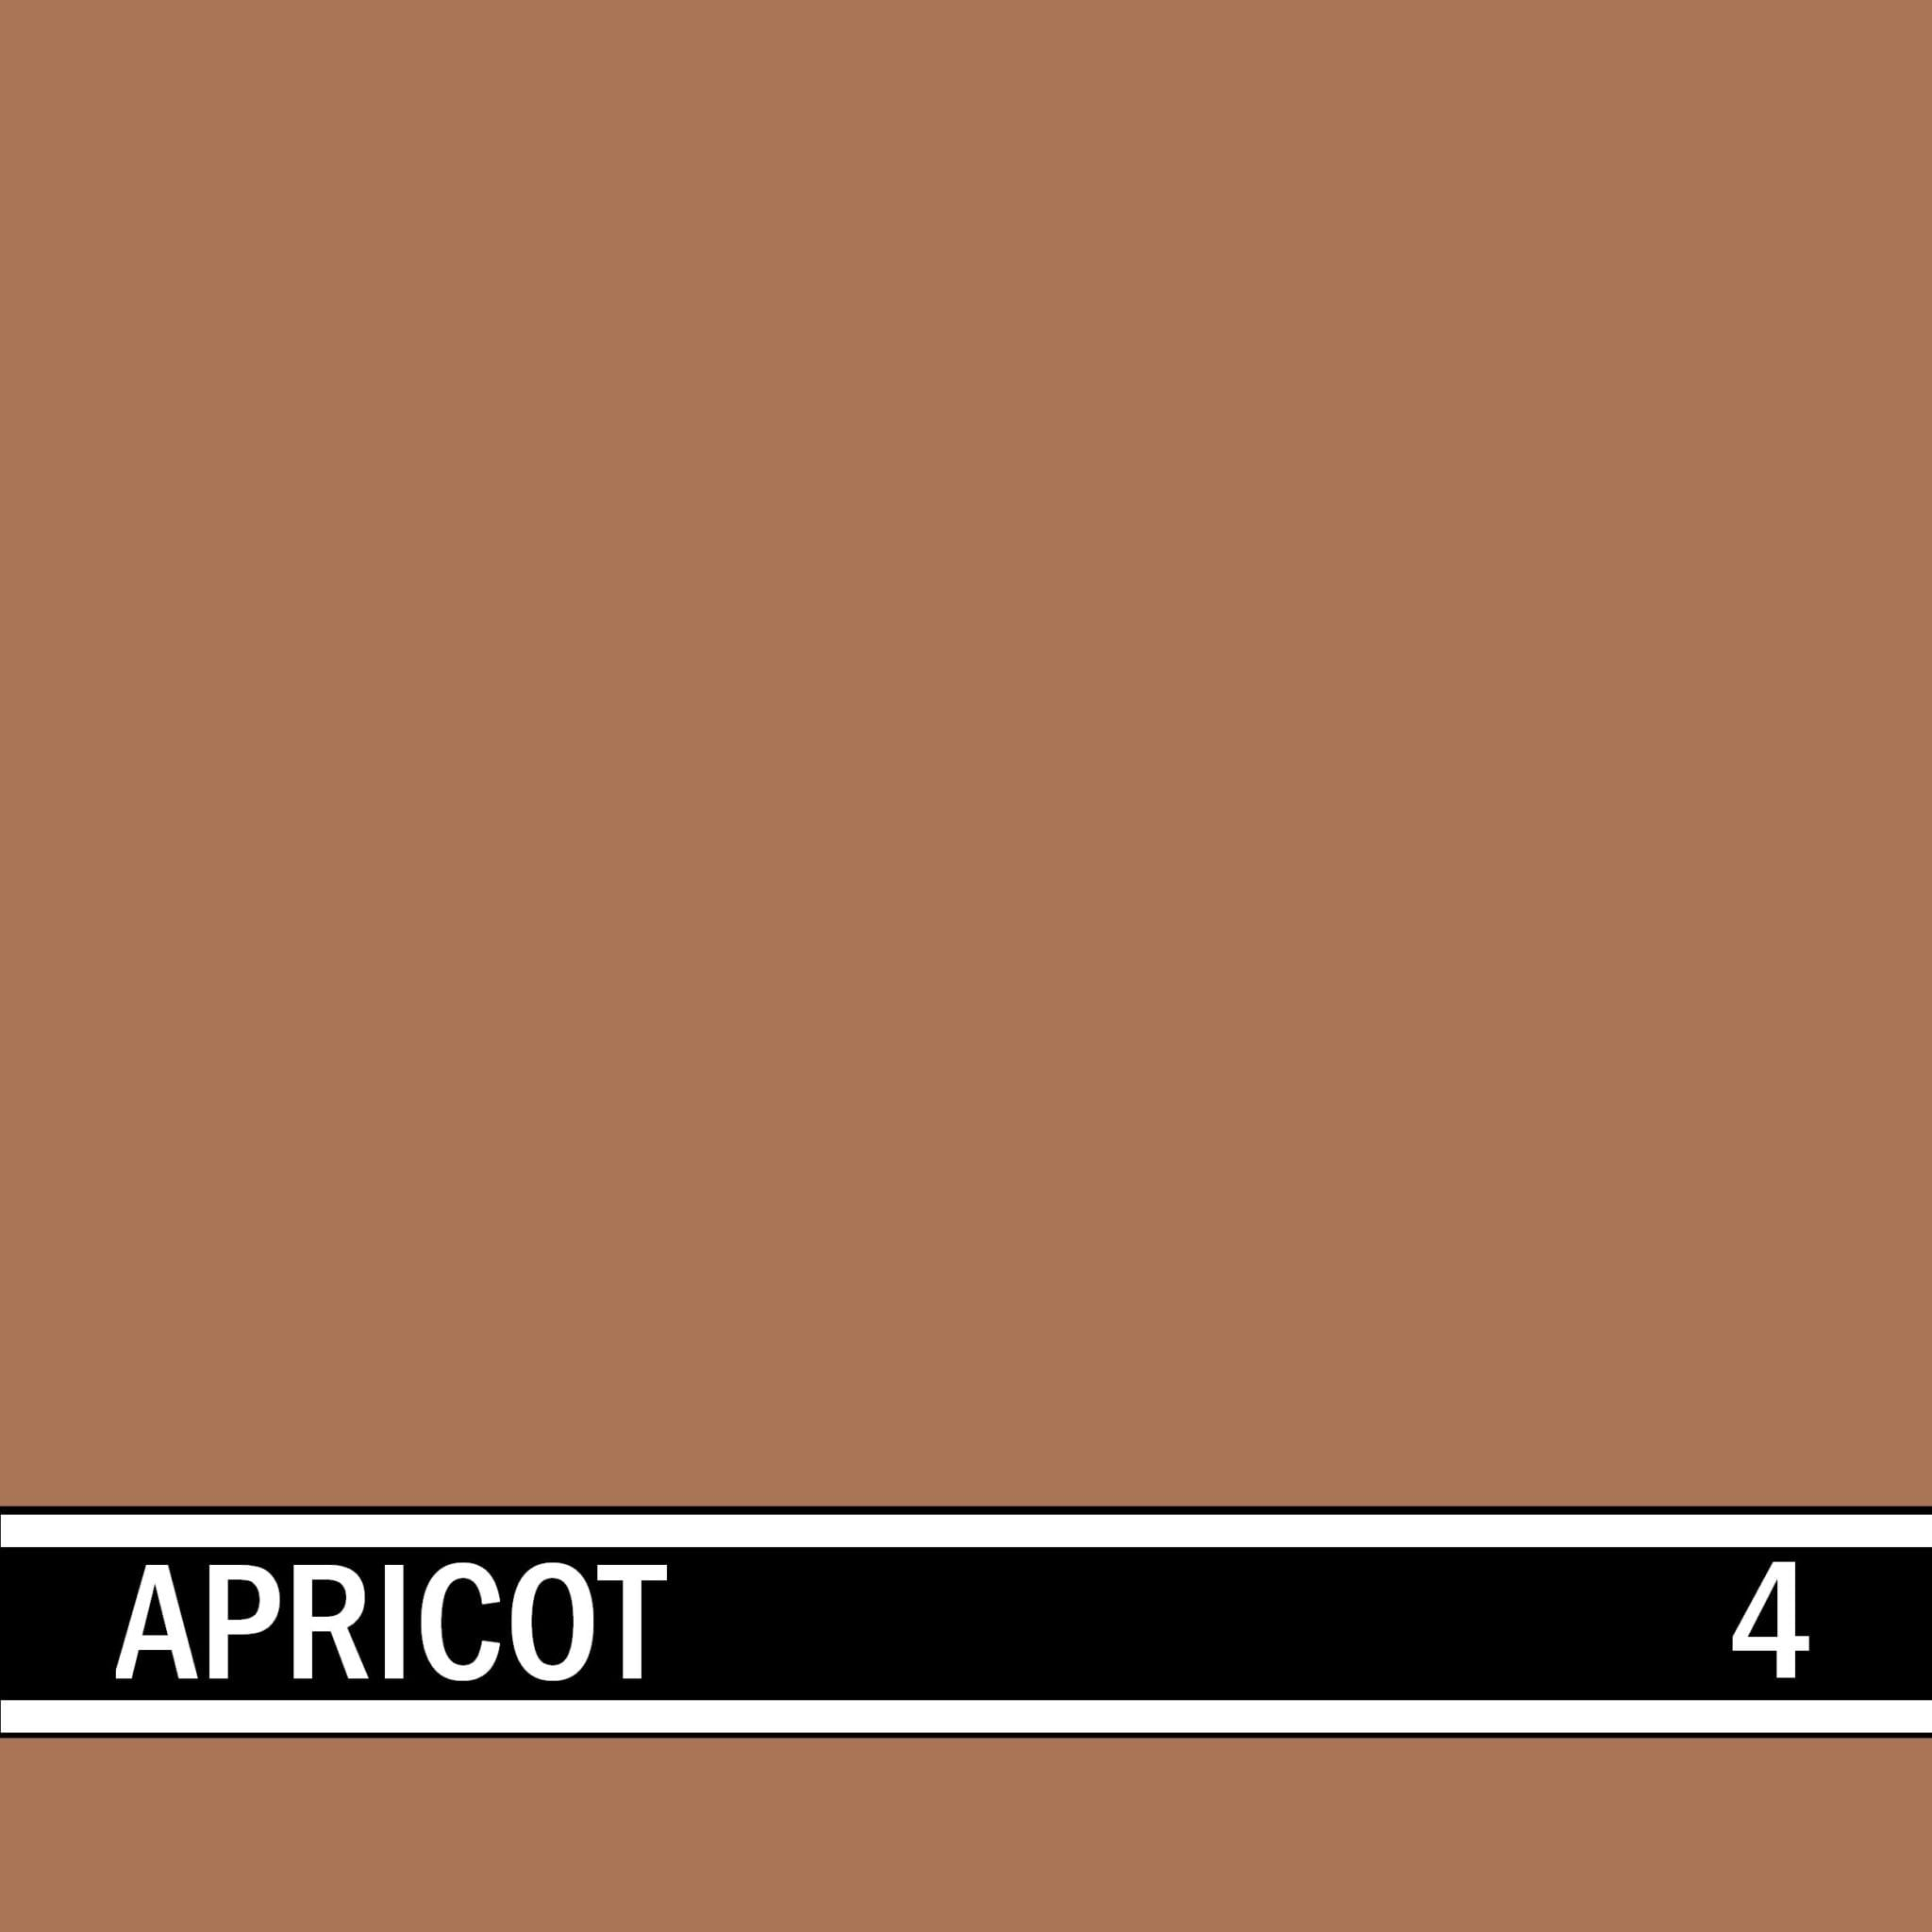 Apricot integral concrete color for stamped concrete and decorative colored concrete